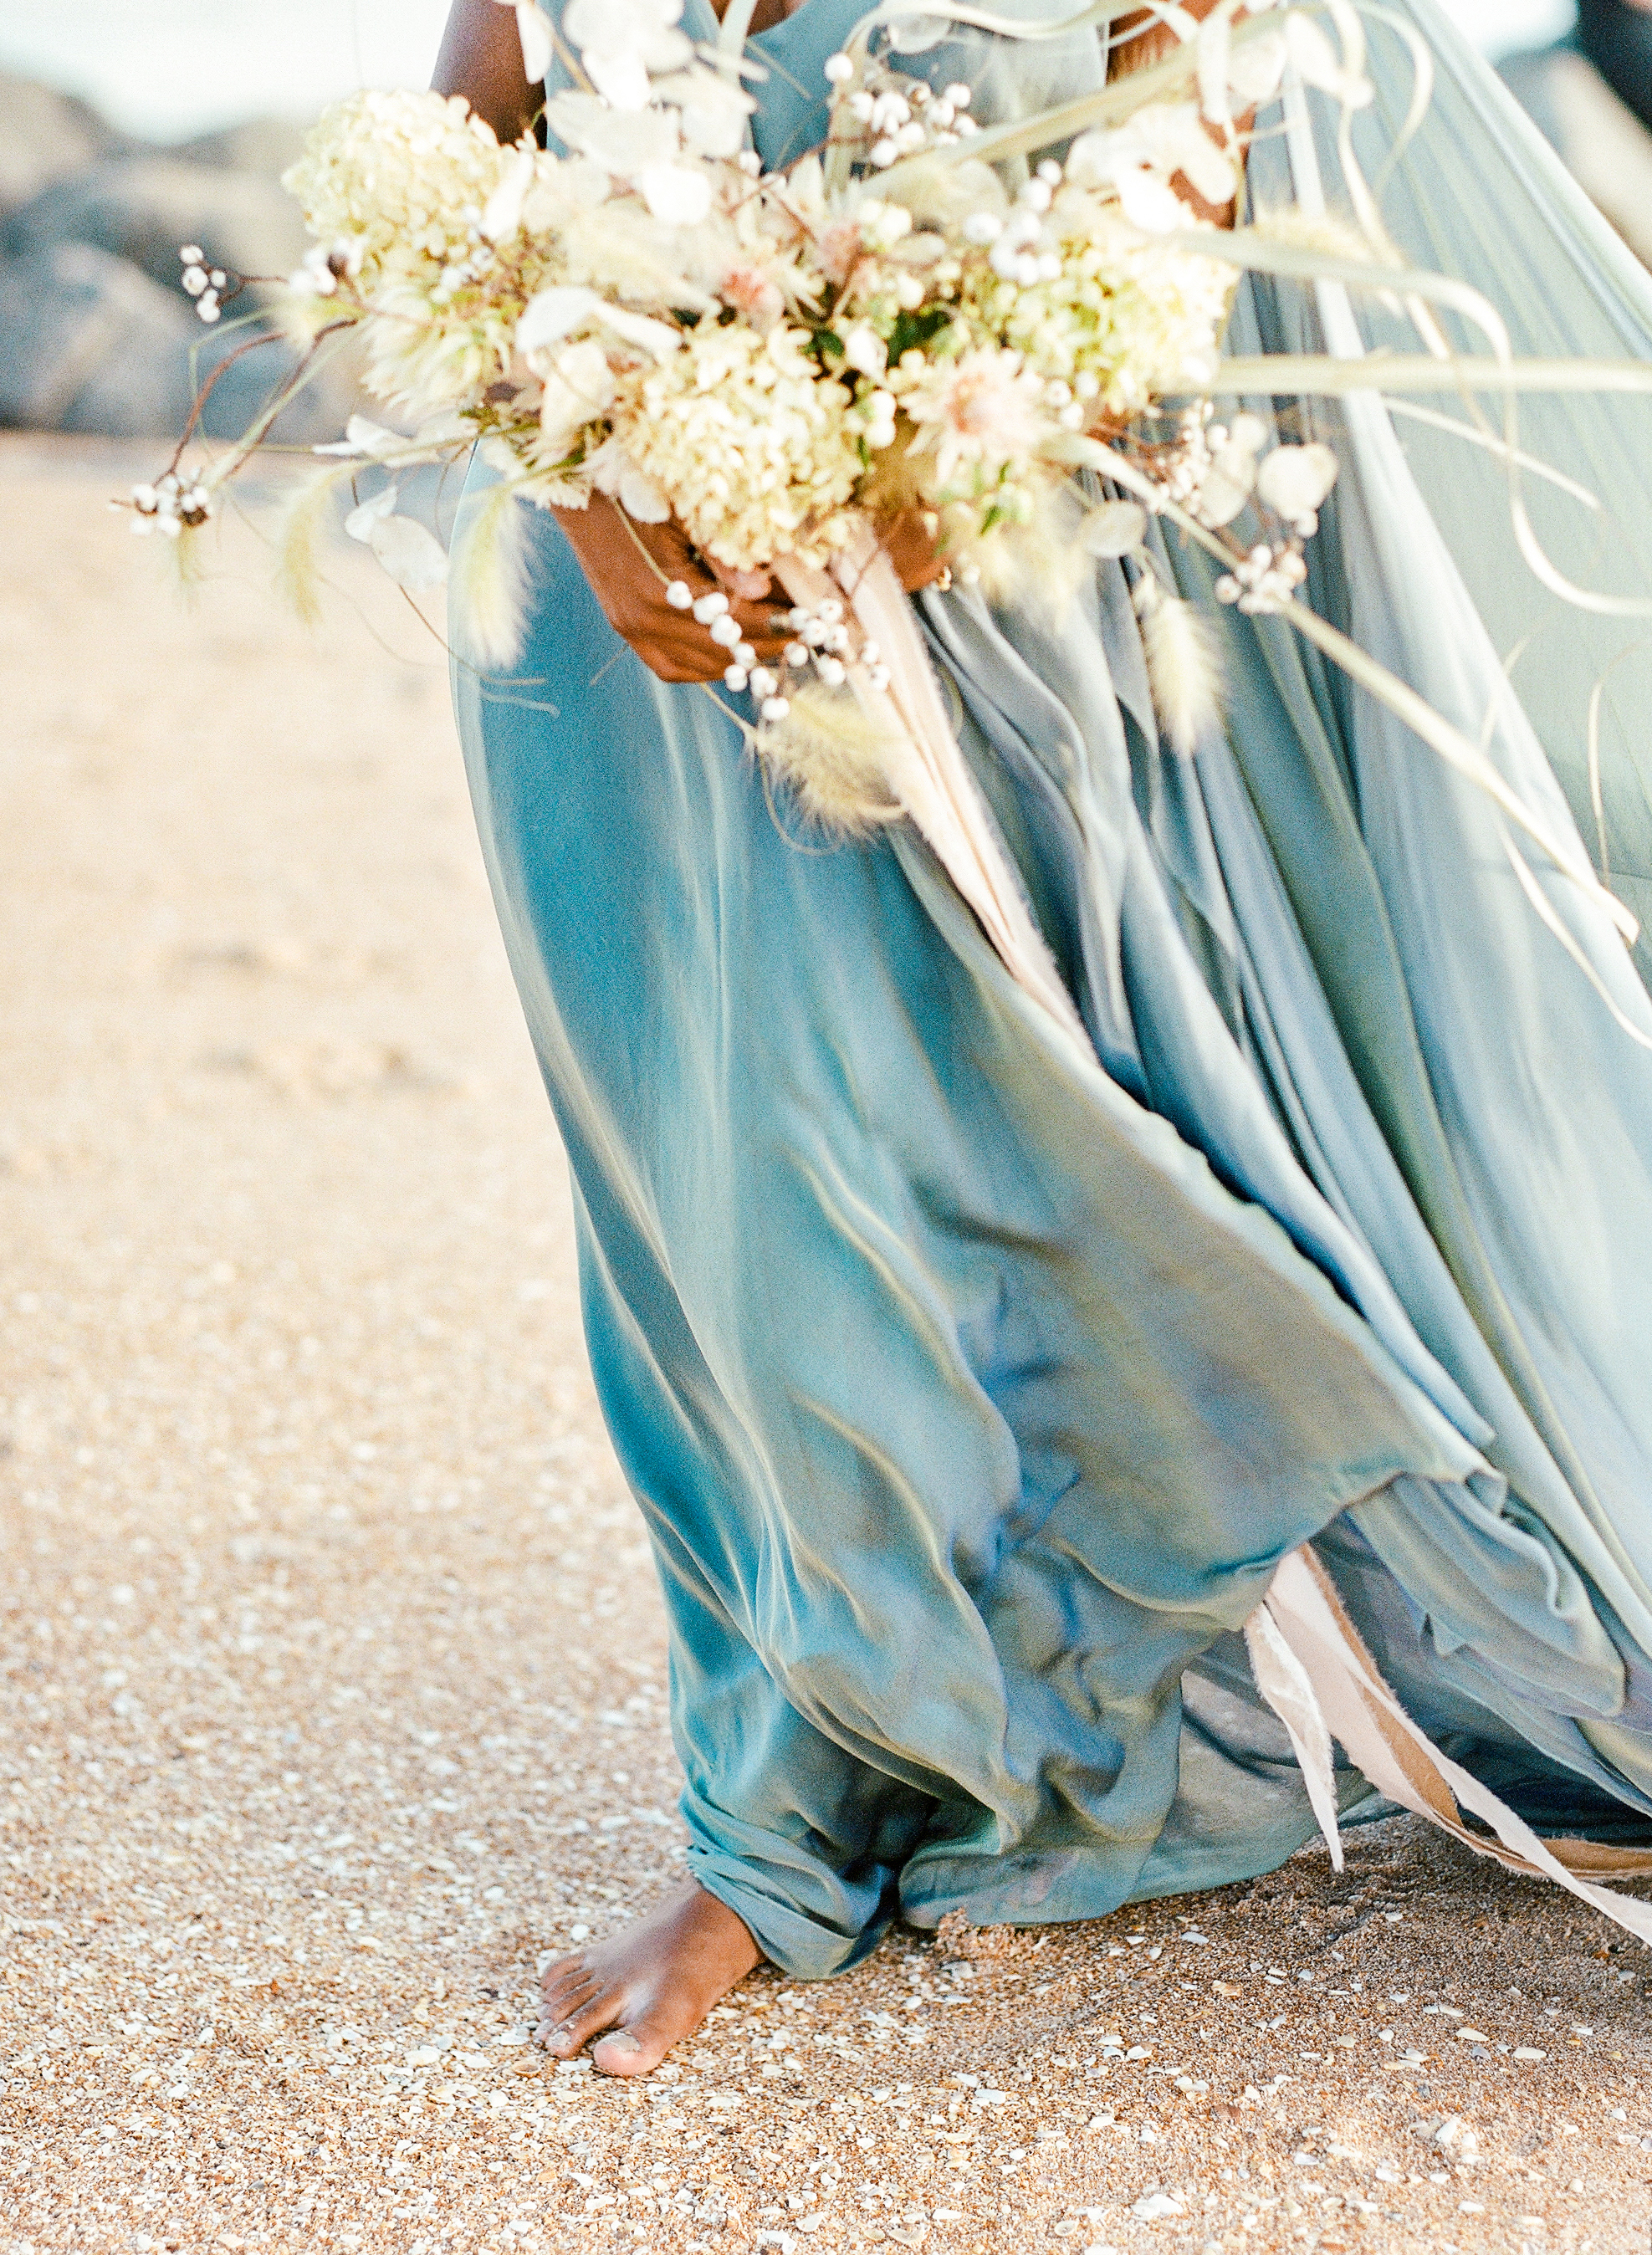 Blue wedding gown beach wedding nonconventional bride049.jpg